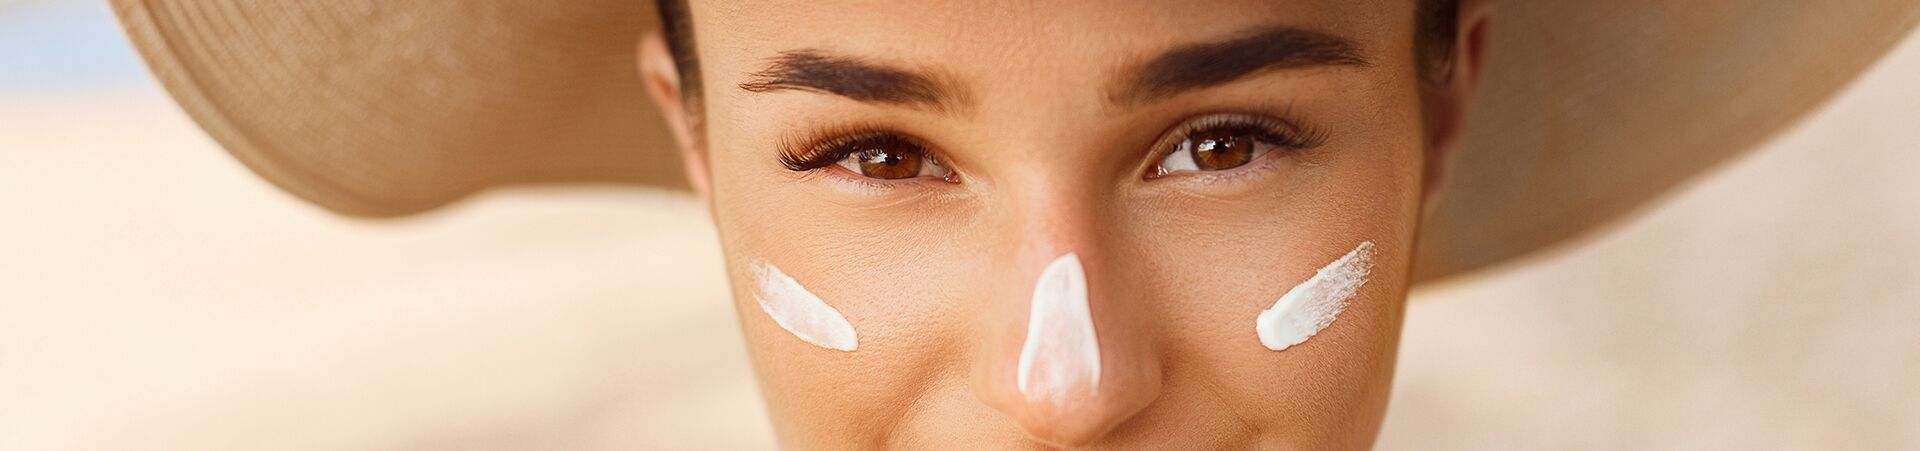 woman with moisturizer on face